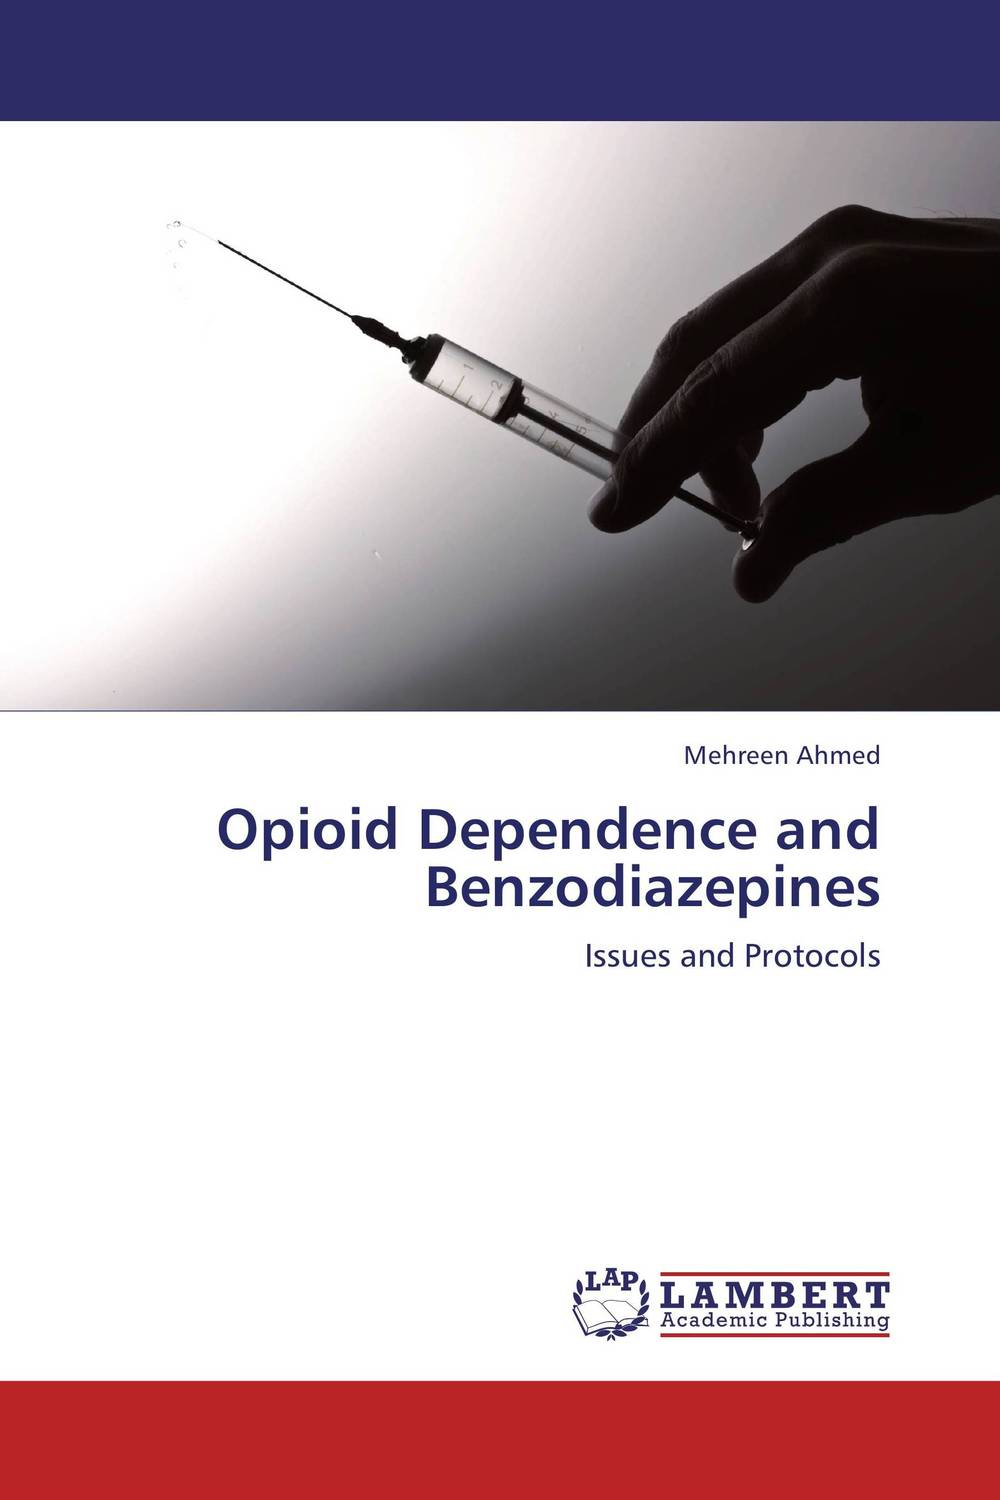 Opioid Dependence and Benzodiazepines personality profile and induced psychosis in alcohol dependence